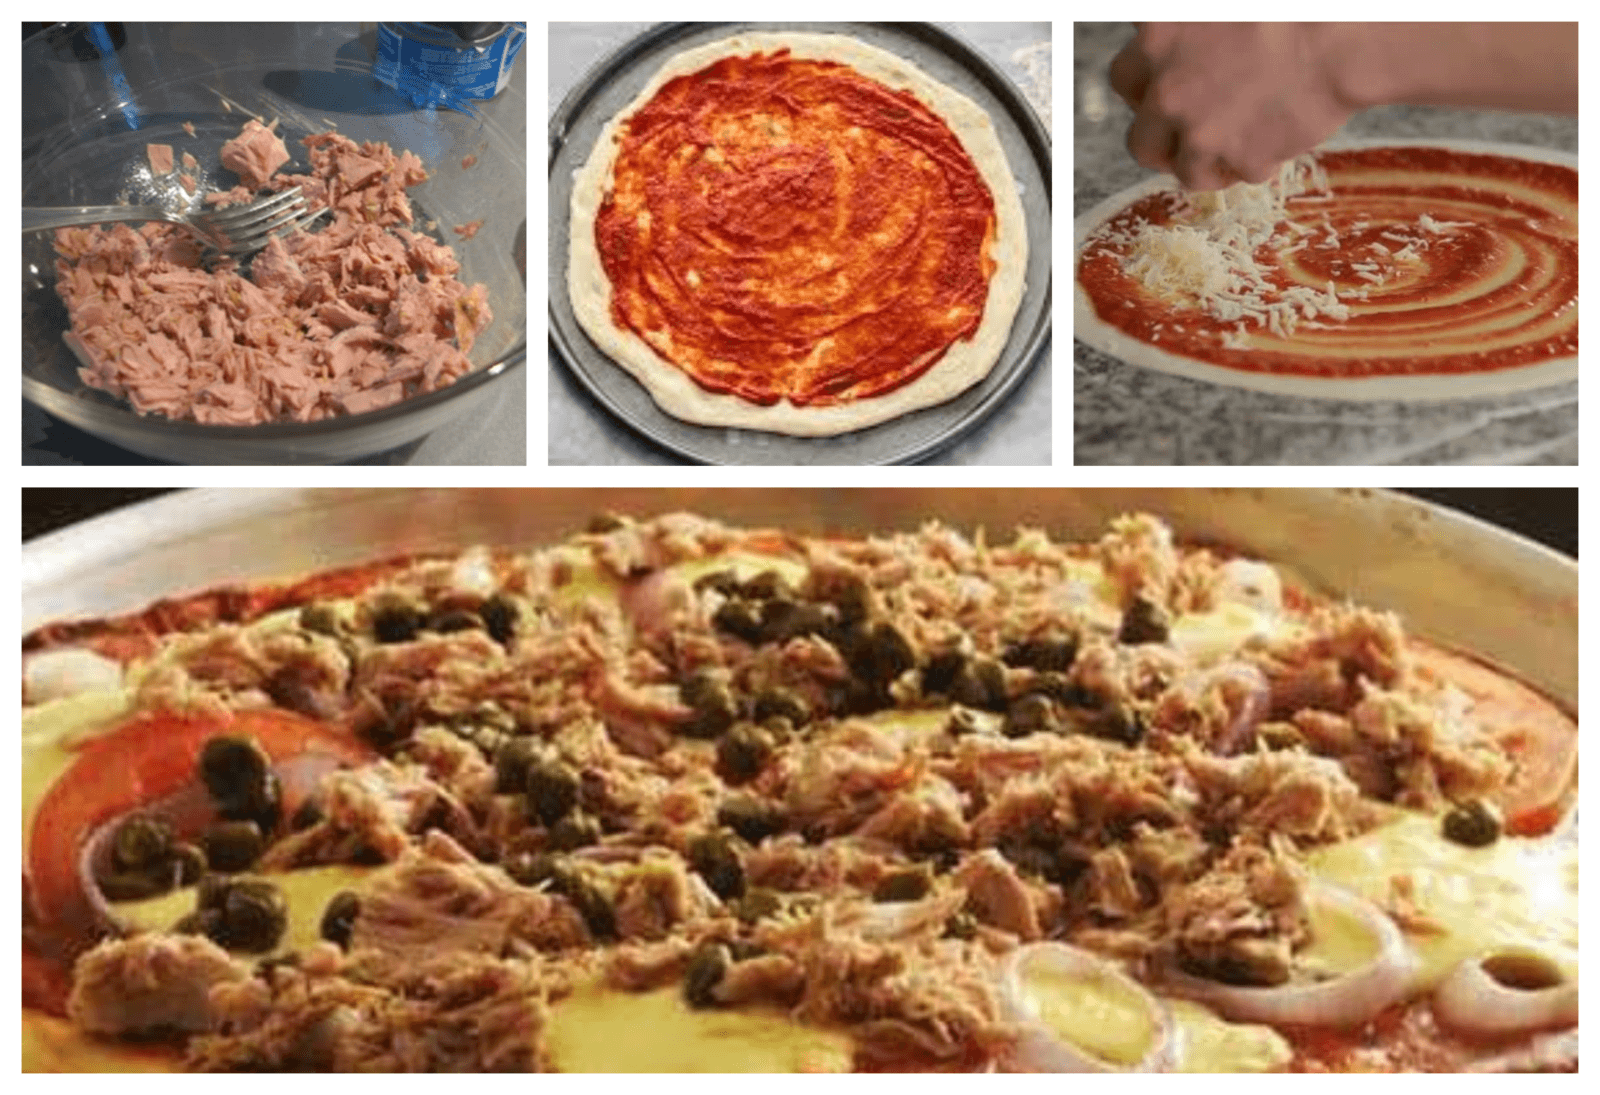 Spreading tomato sauce , cheese and tuna on the pizza before baking